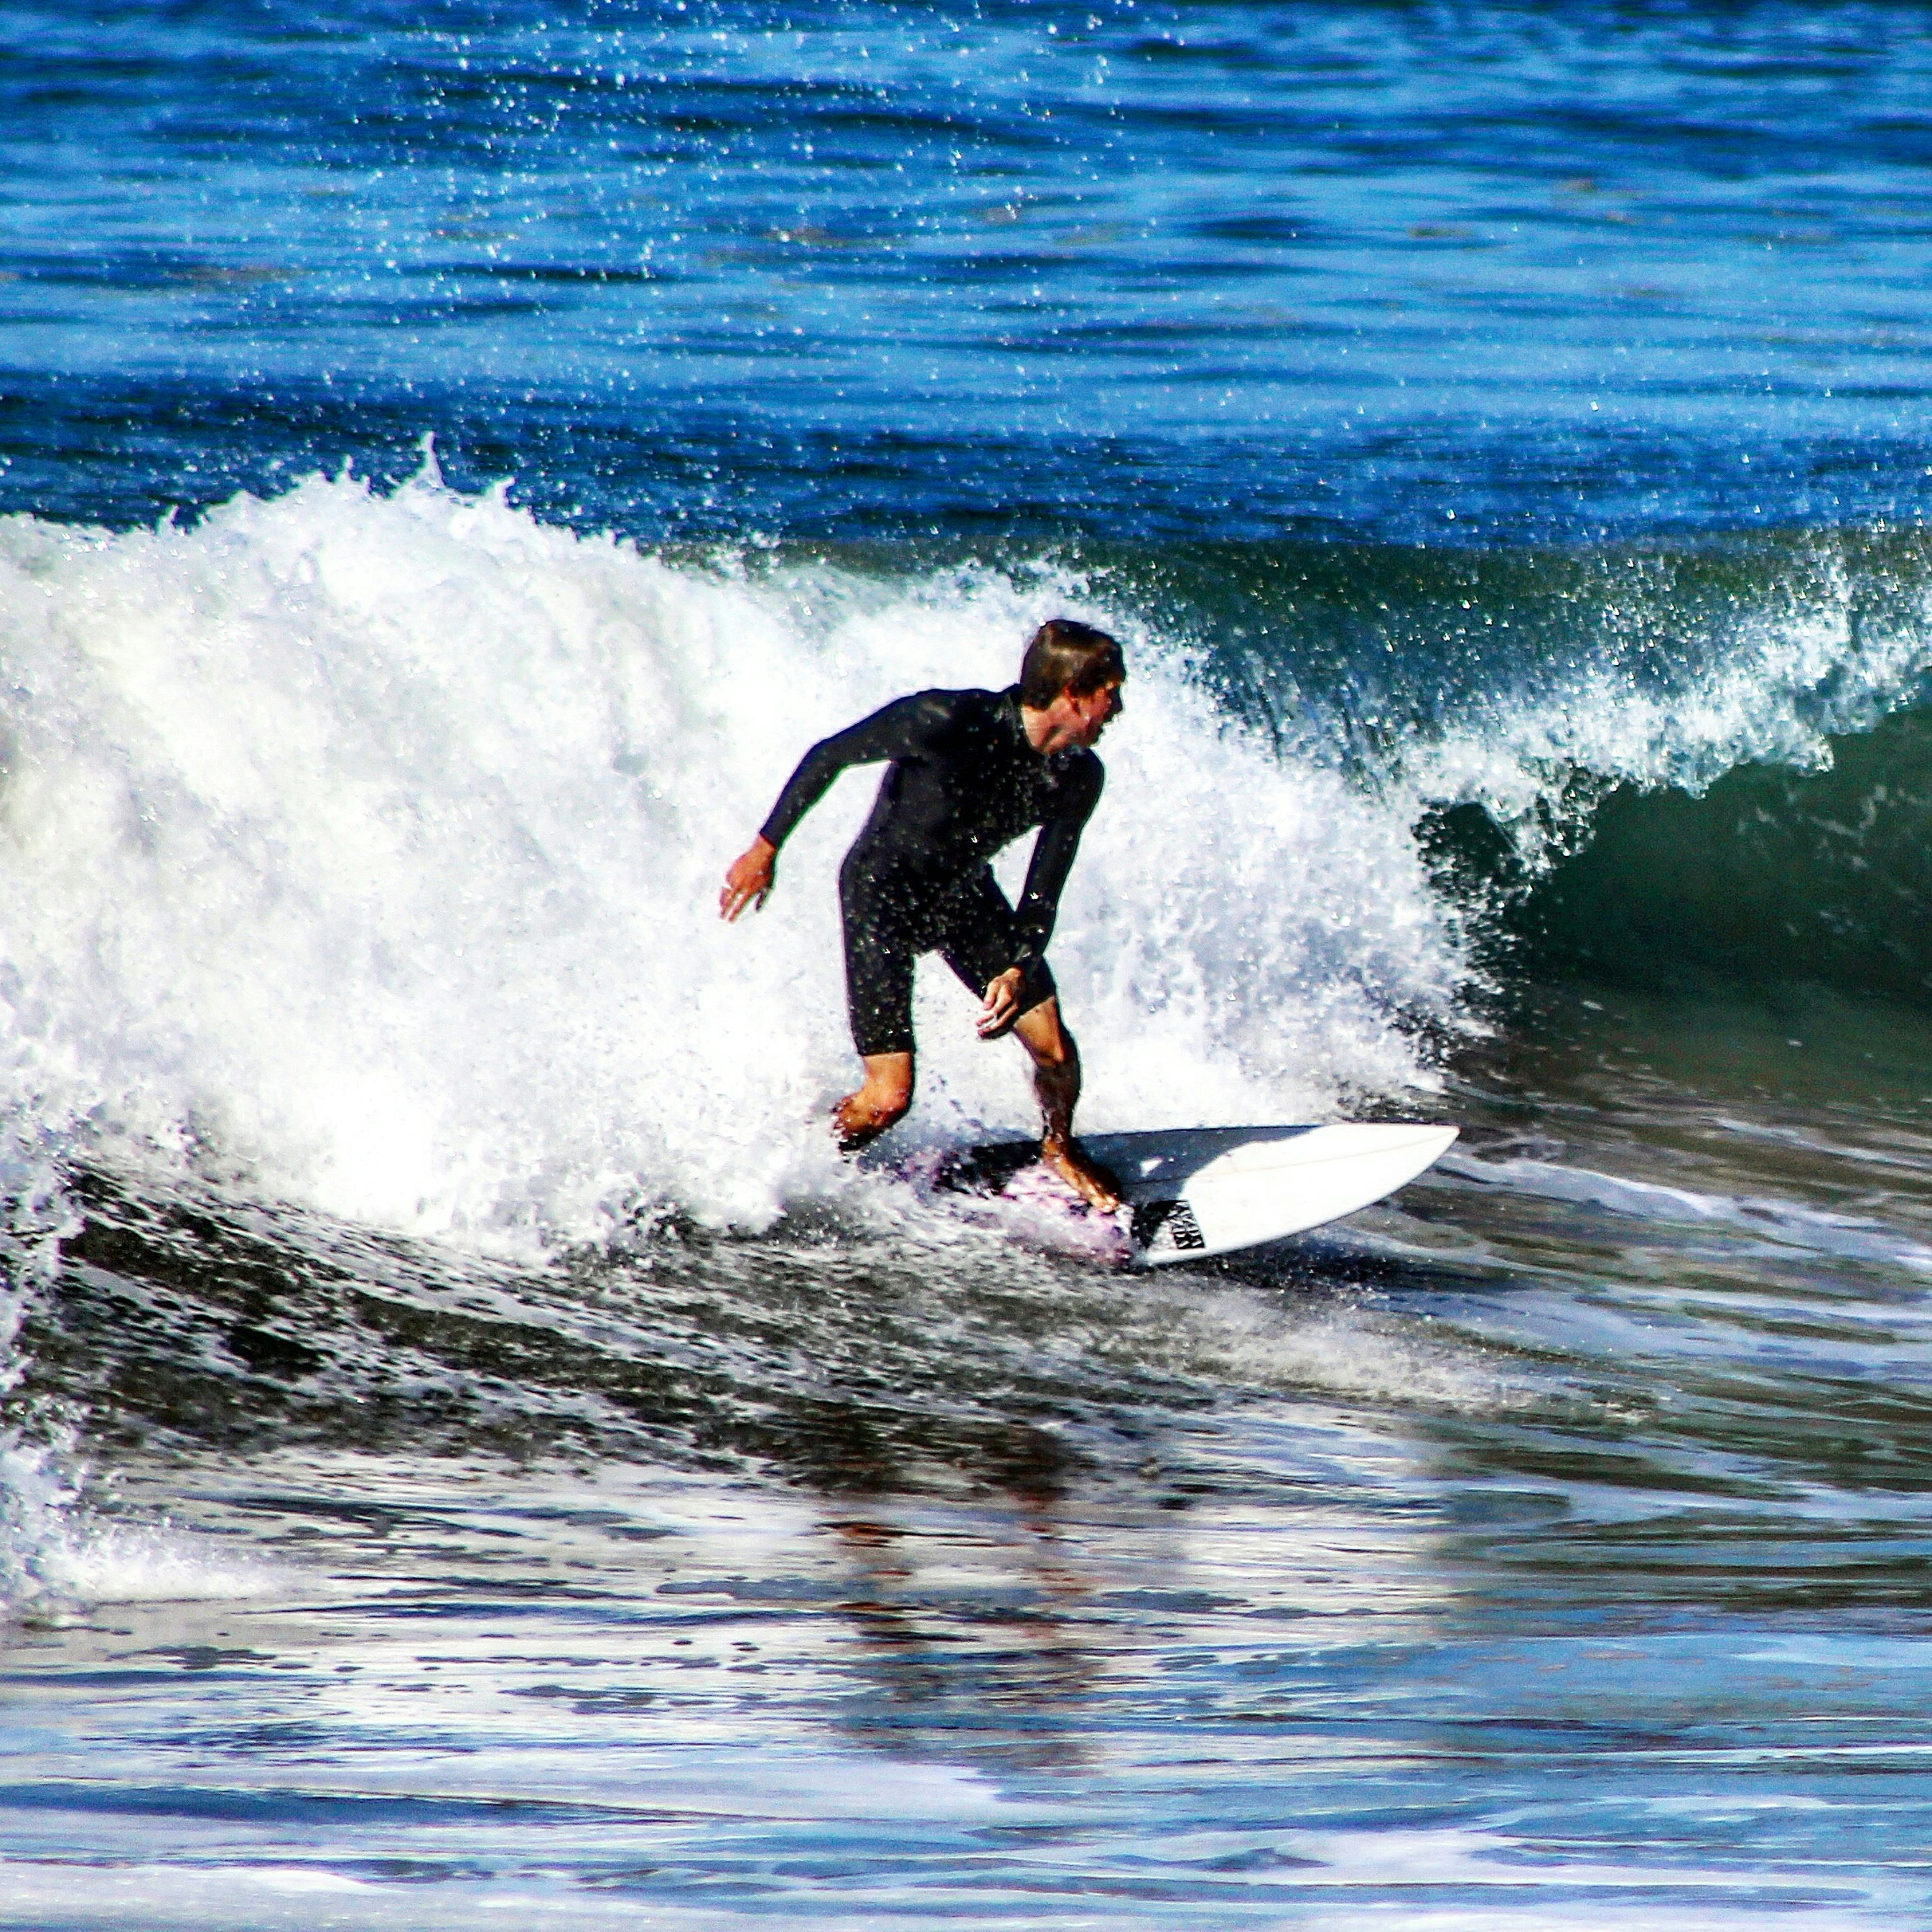 water, sea, wave, lifestyles, leisure activity, waterfront, motion, surf, surfing, surfboard, full length, splashing, vacations, enjoyment, jumping, water sport, sport, men